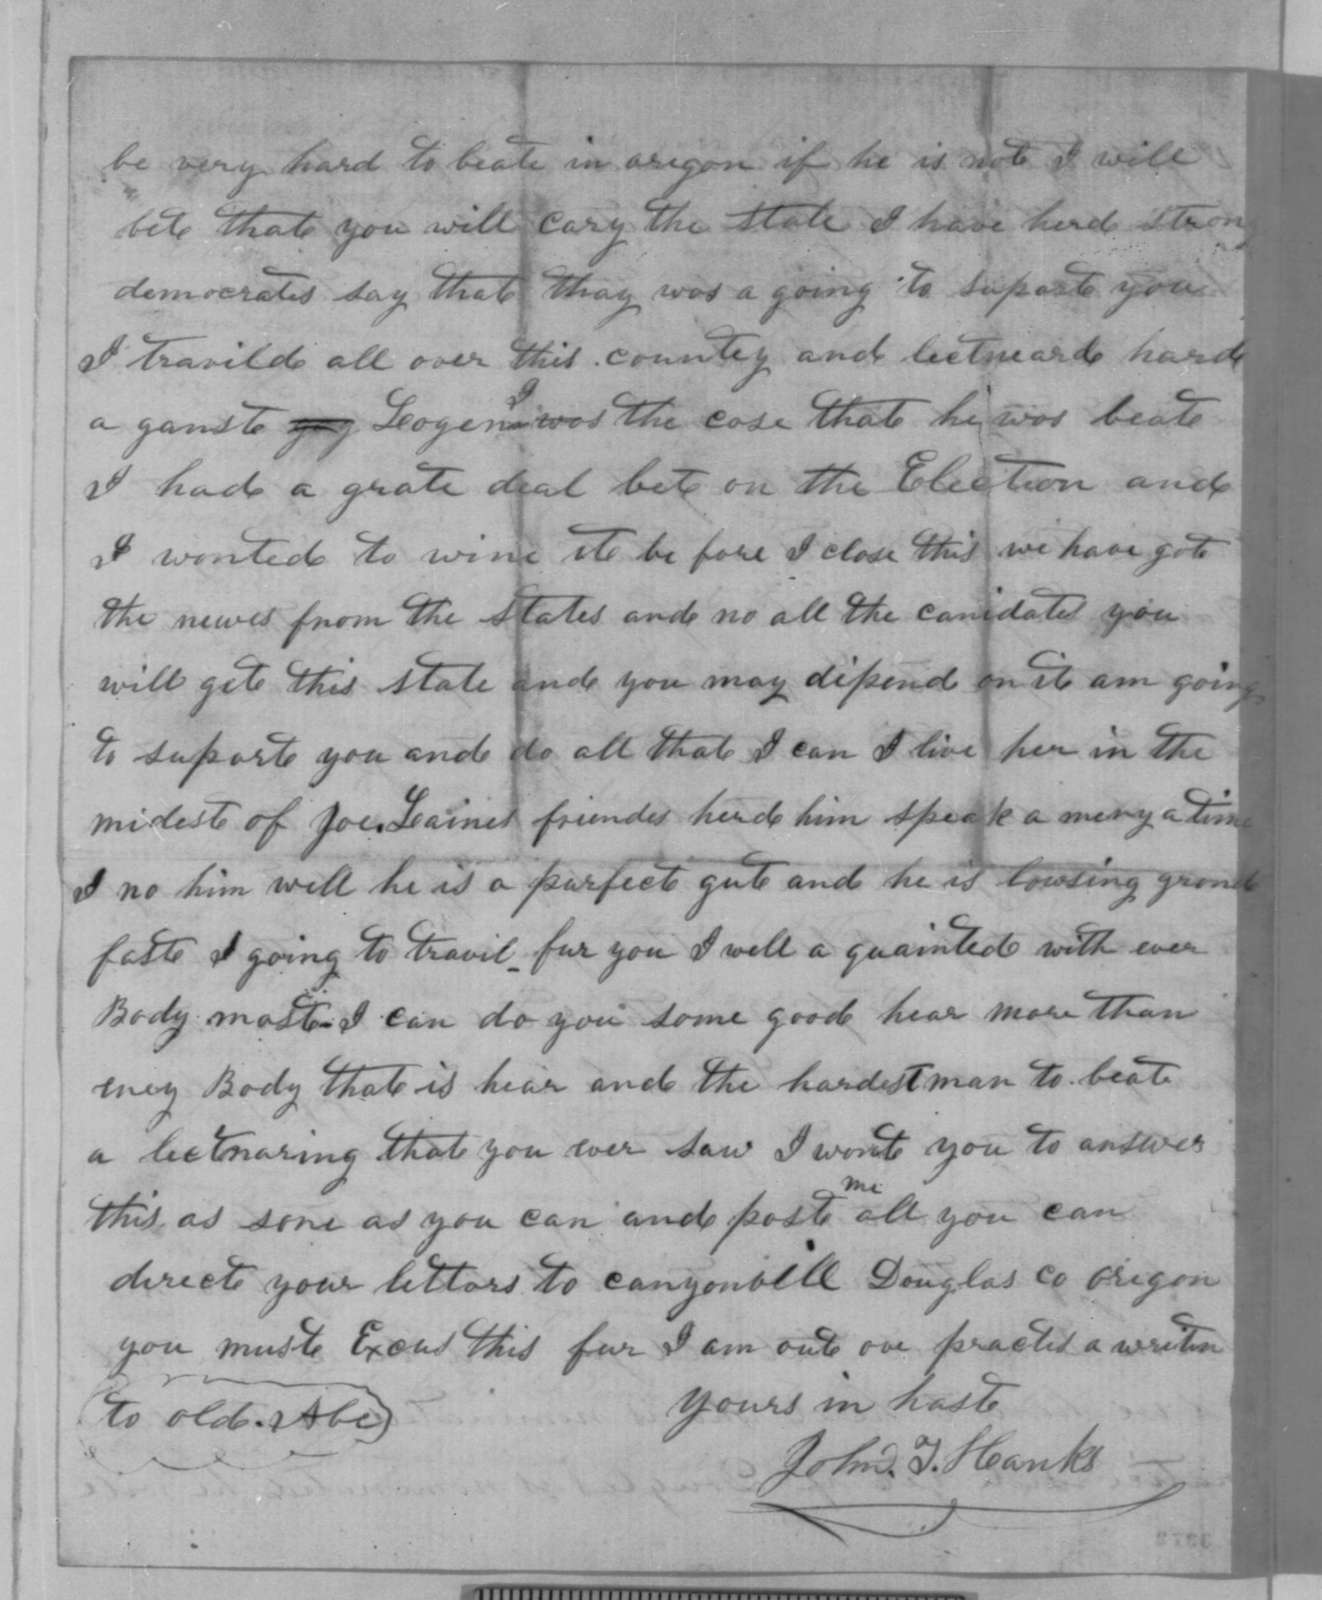 John T. Hanks to Abraham Lincoln, Sunday, July 22, 1860  (Wants advice on how to conduct personal affairs)